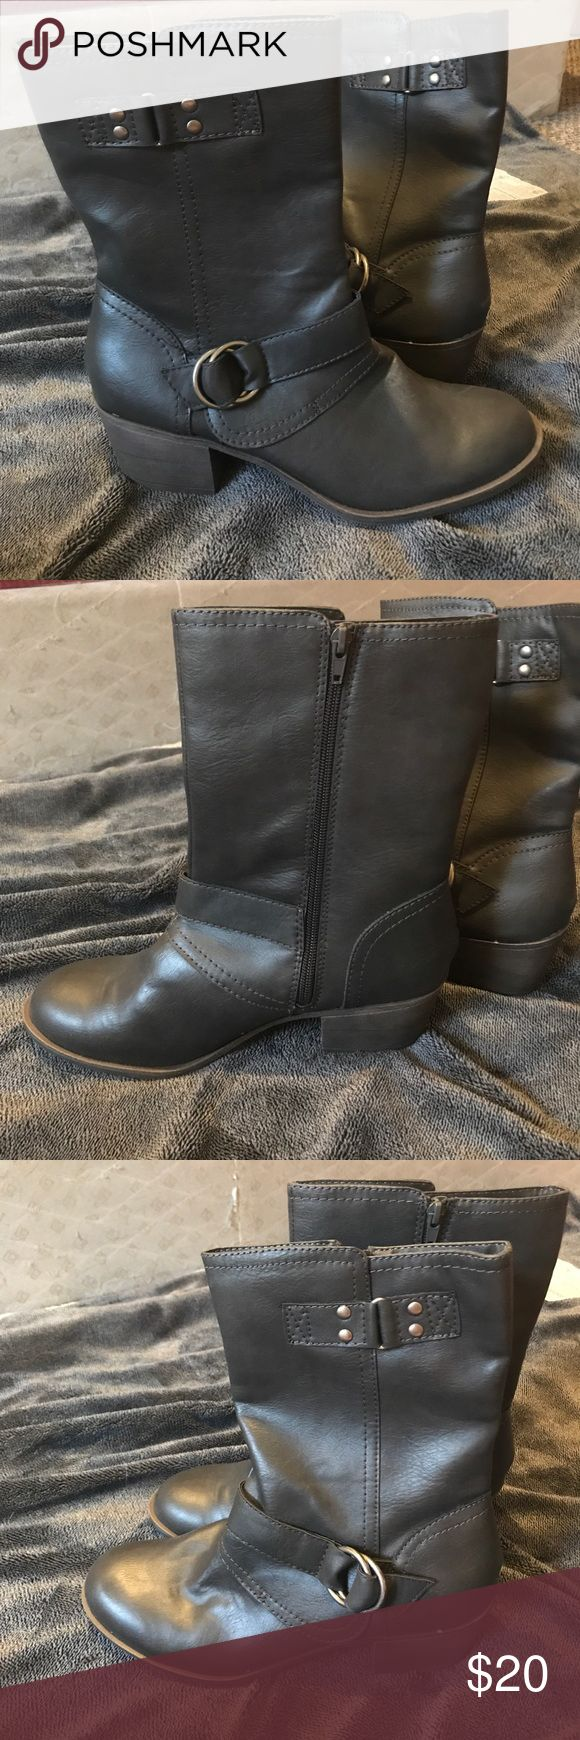 Rampage boots - NWOT Dark gray w/ ~2 inch heel - purchased from Shoe Carnival. Never worn! Rampage Shoes Heeled Boots